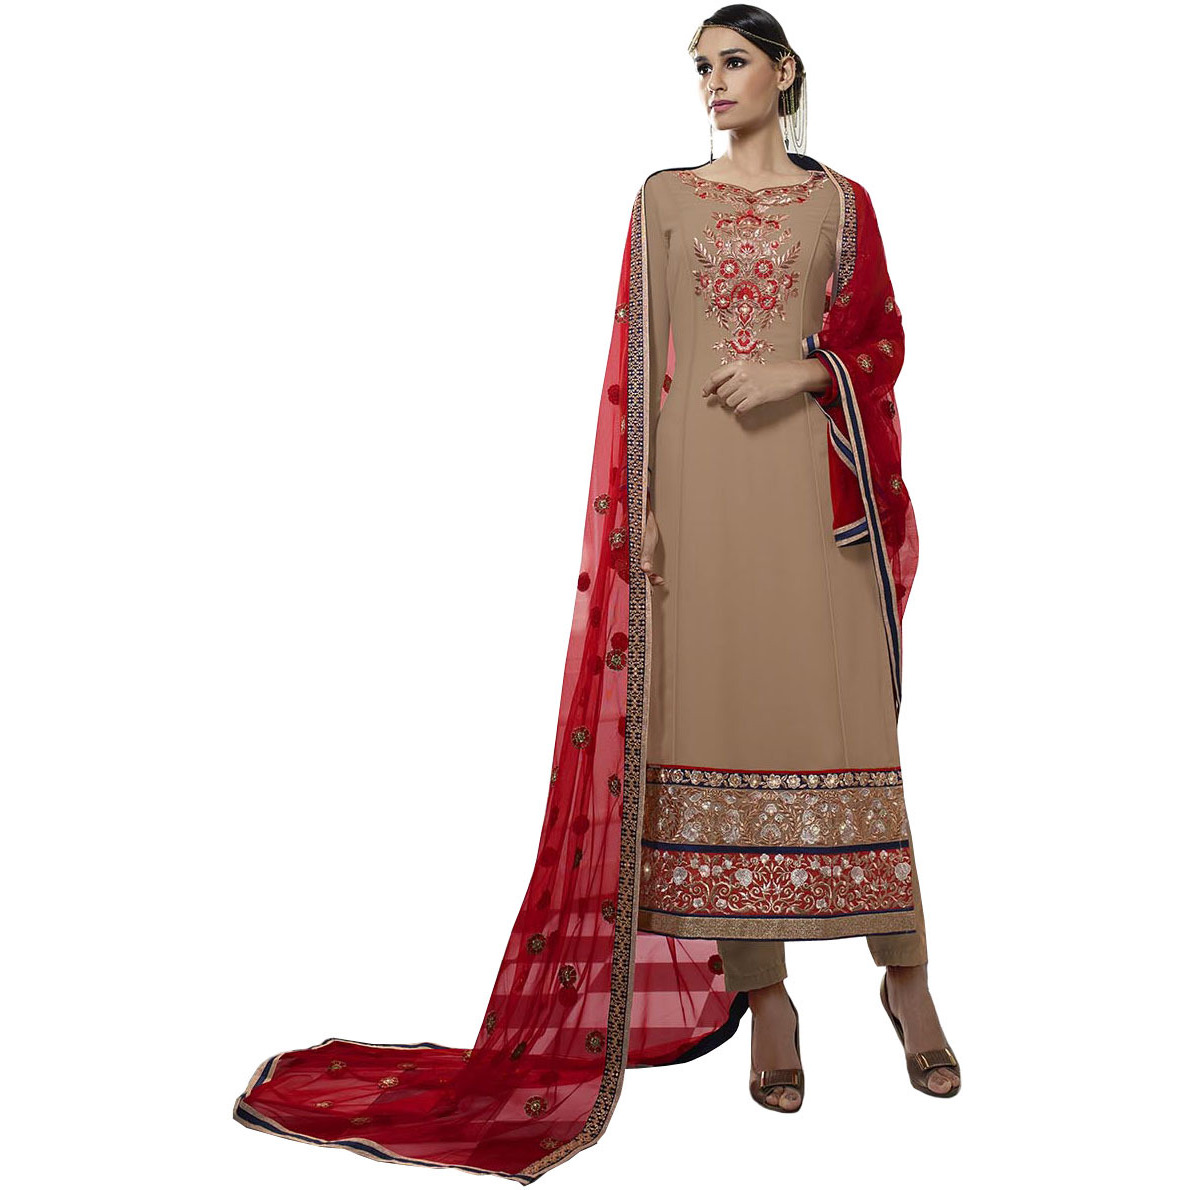 Beige and Red Long Parallel Salwar Suit with Embroidery in Zari and Net Dupatta